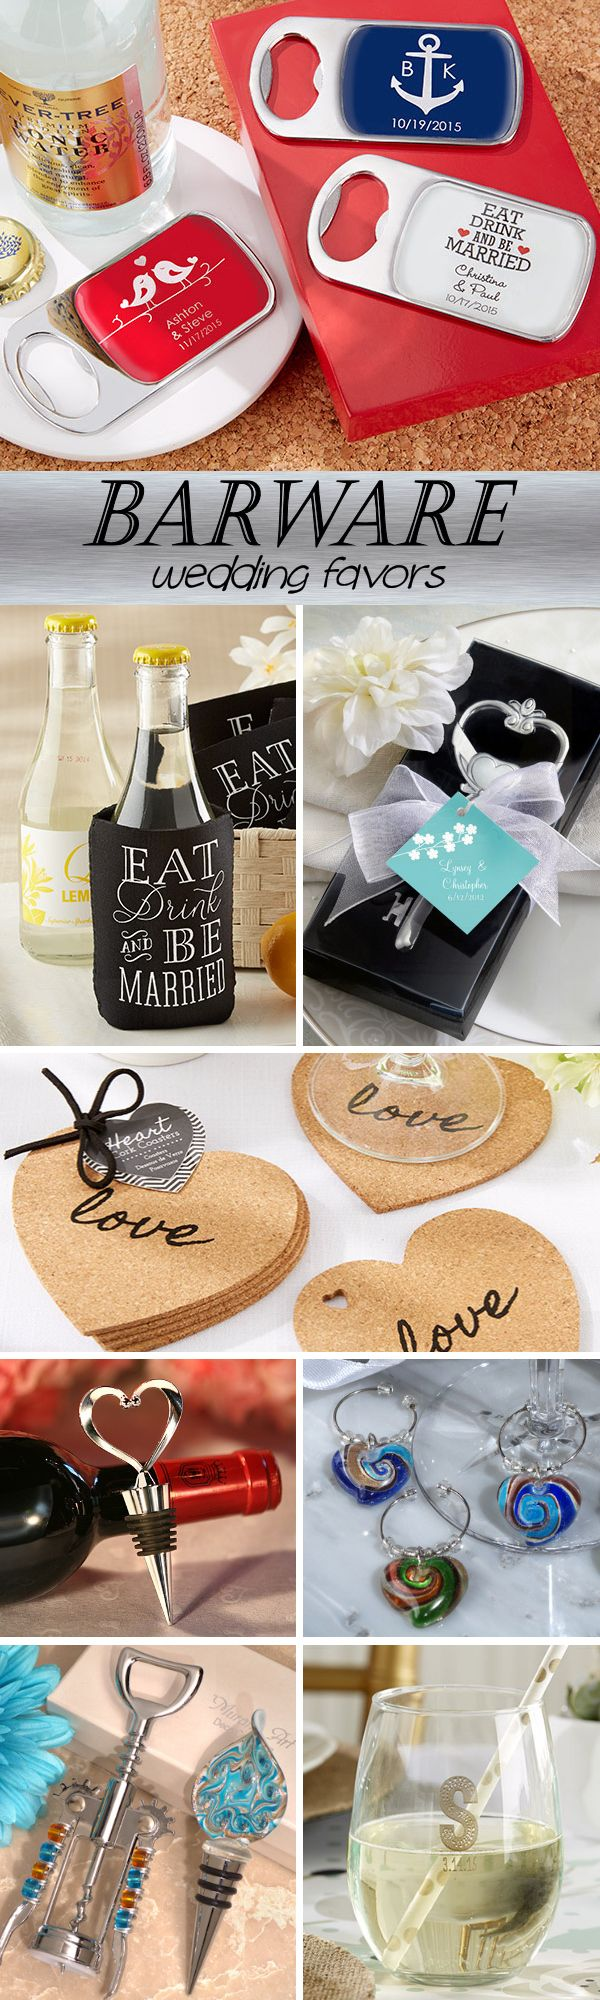 100 Barware Wedding Favor Ideas....coasters, bottle openers, wine stoppers, wine glass charms and more!